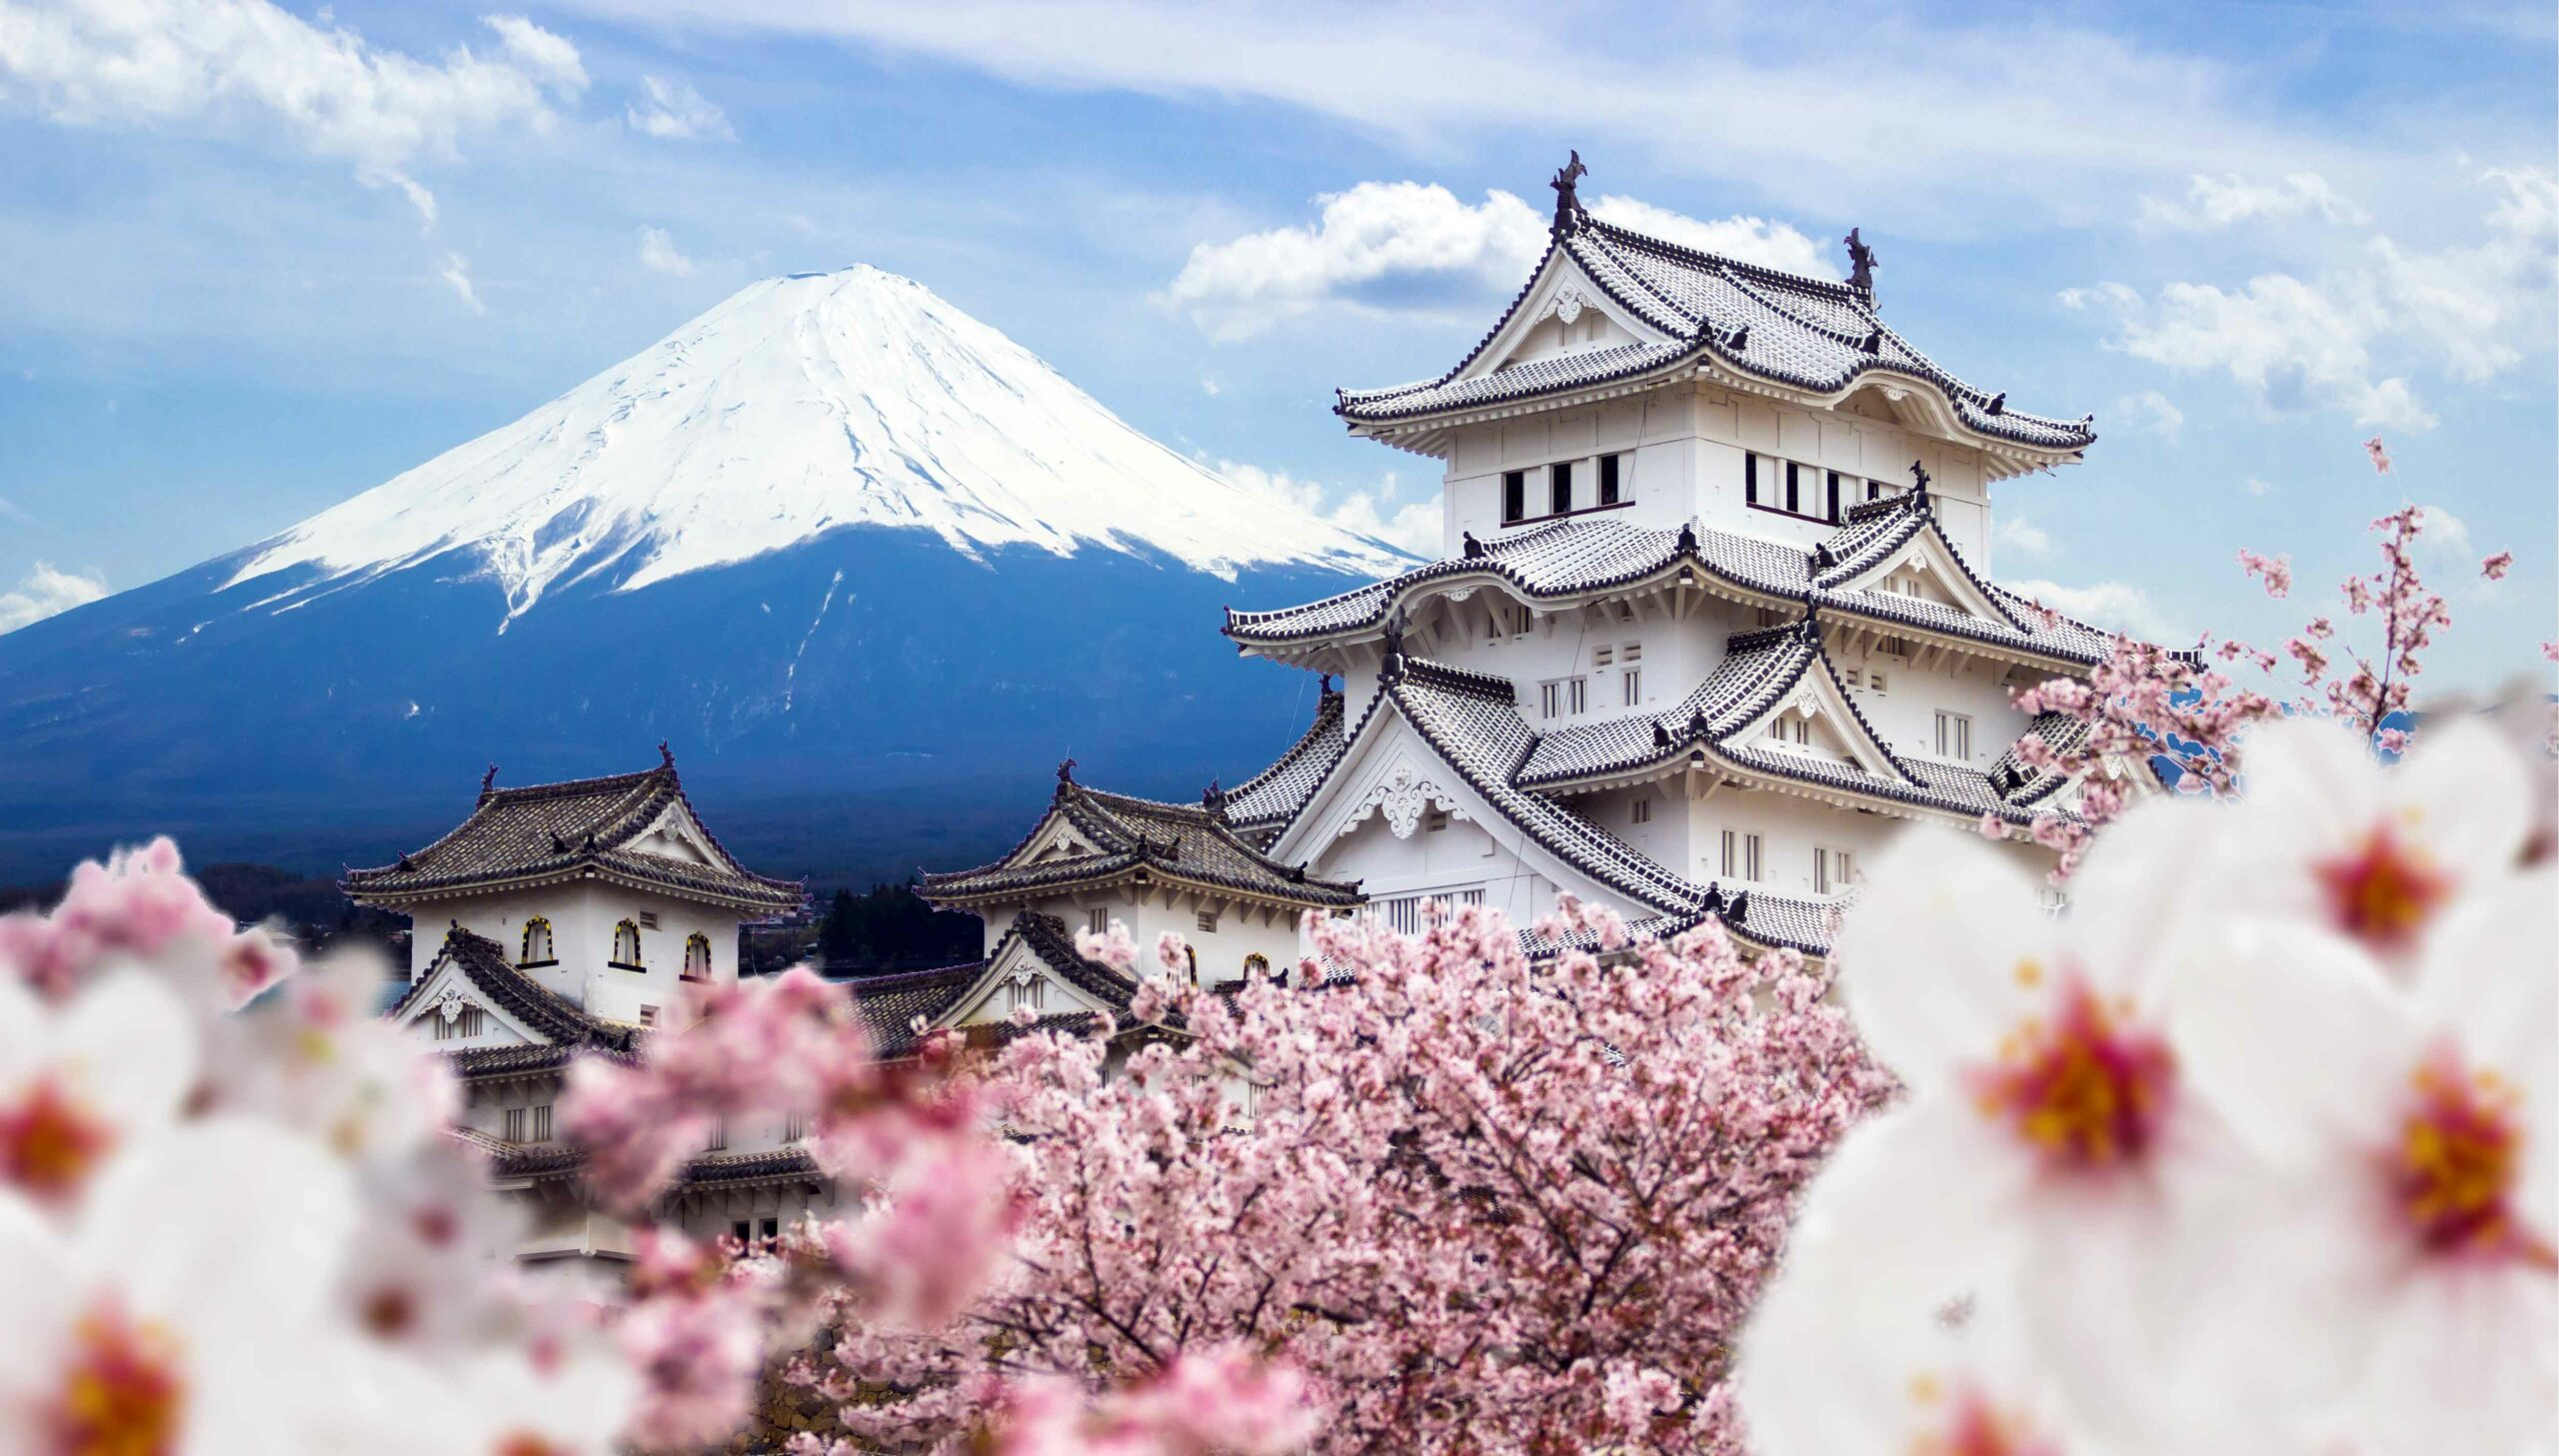 Himeji Castle with cherry blossoms in front of Mount Fuji